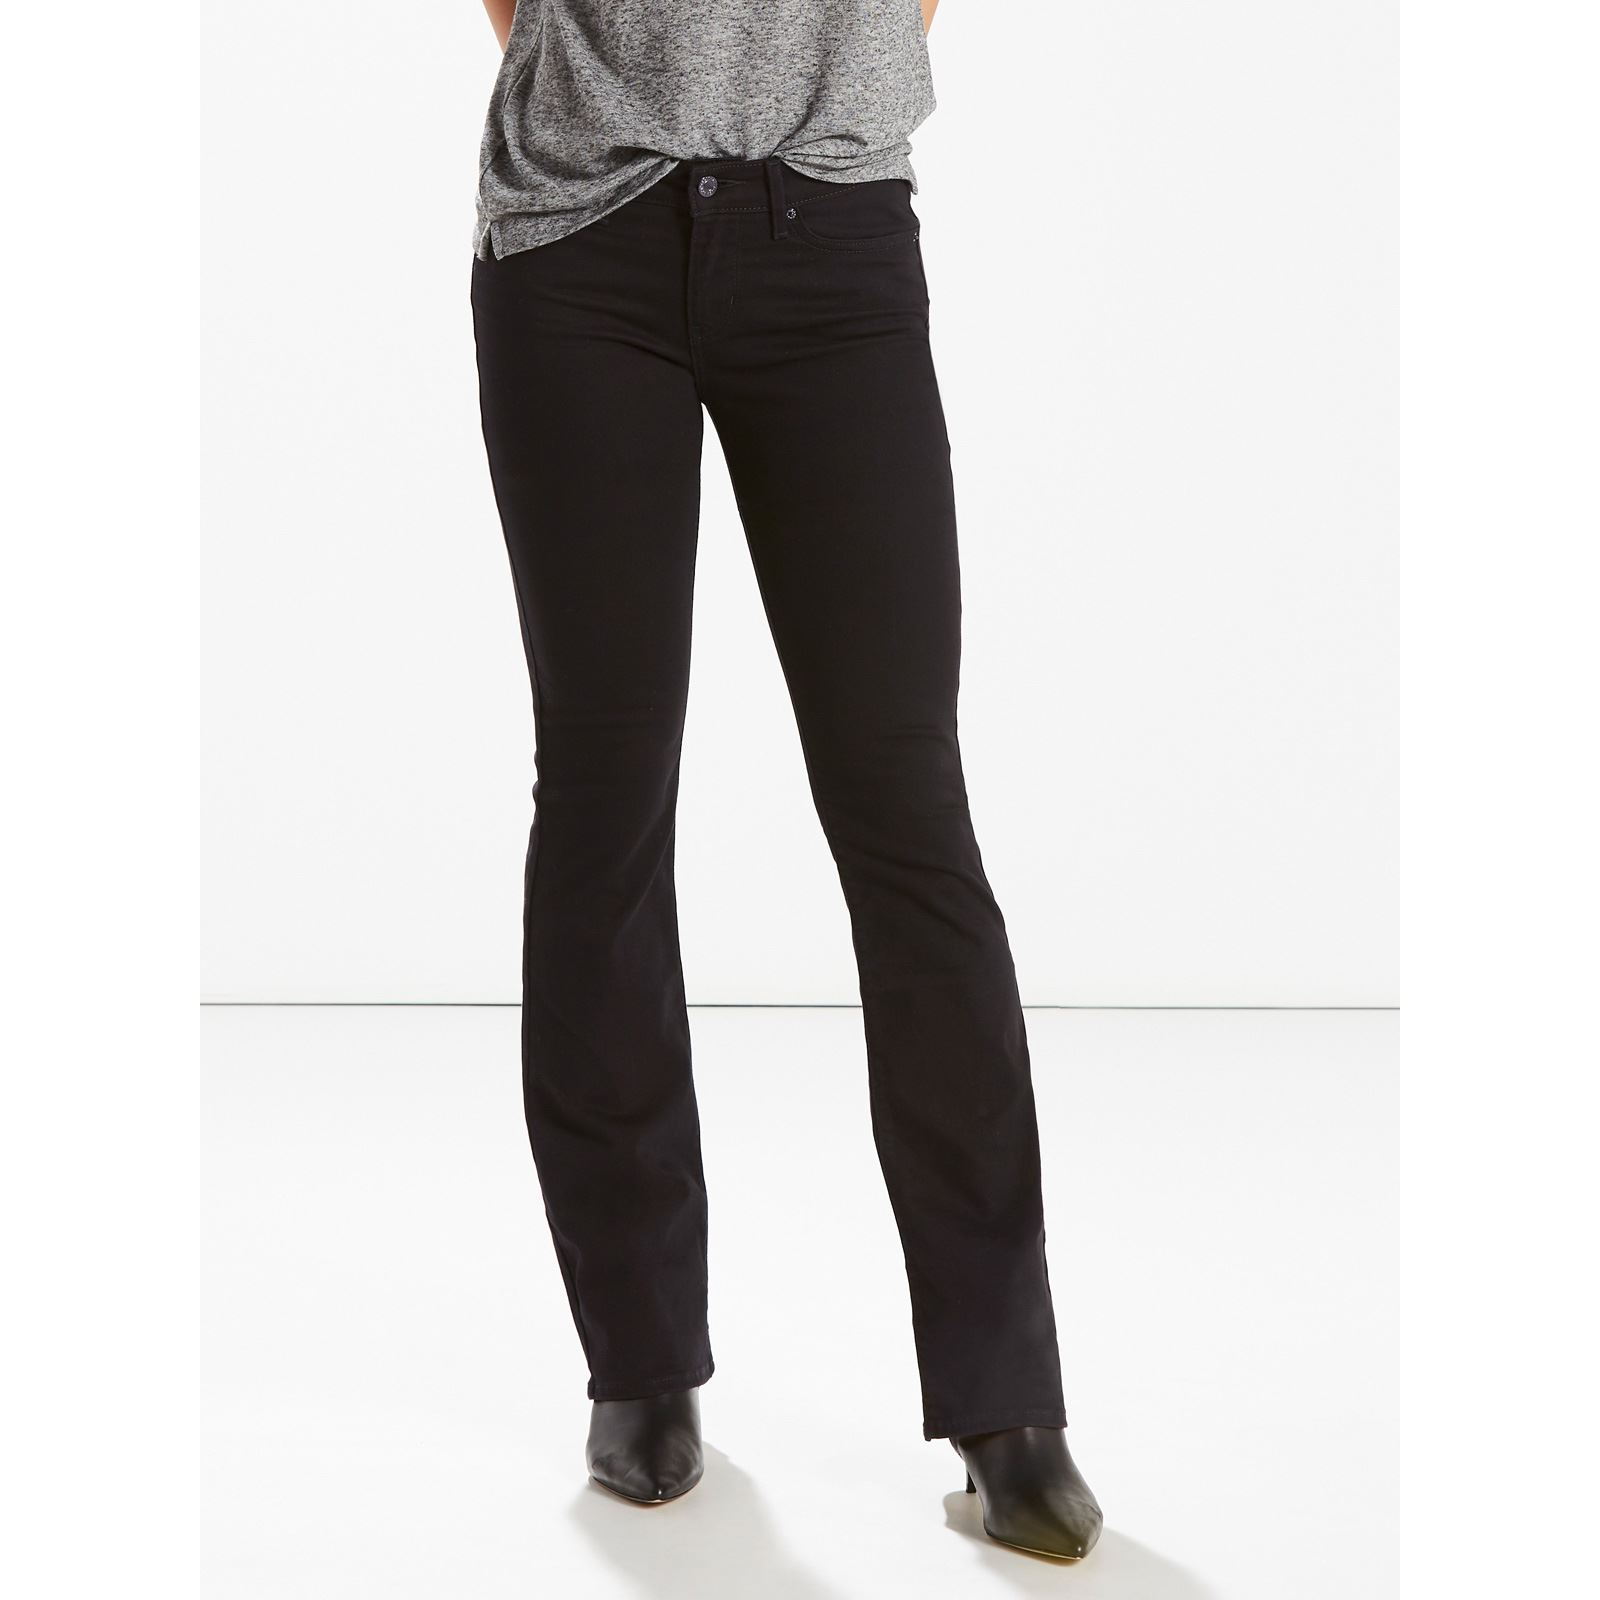 Levi's Black Femme Sheep 715Jean V Bootcut WHbEDY92Ie